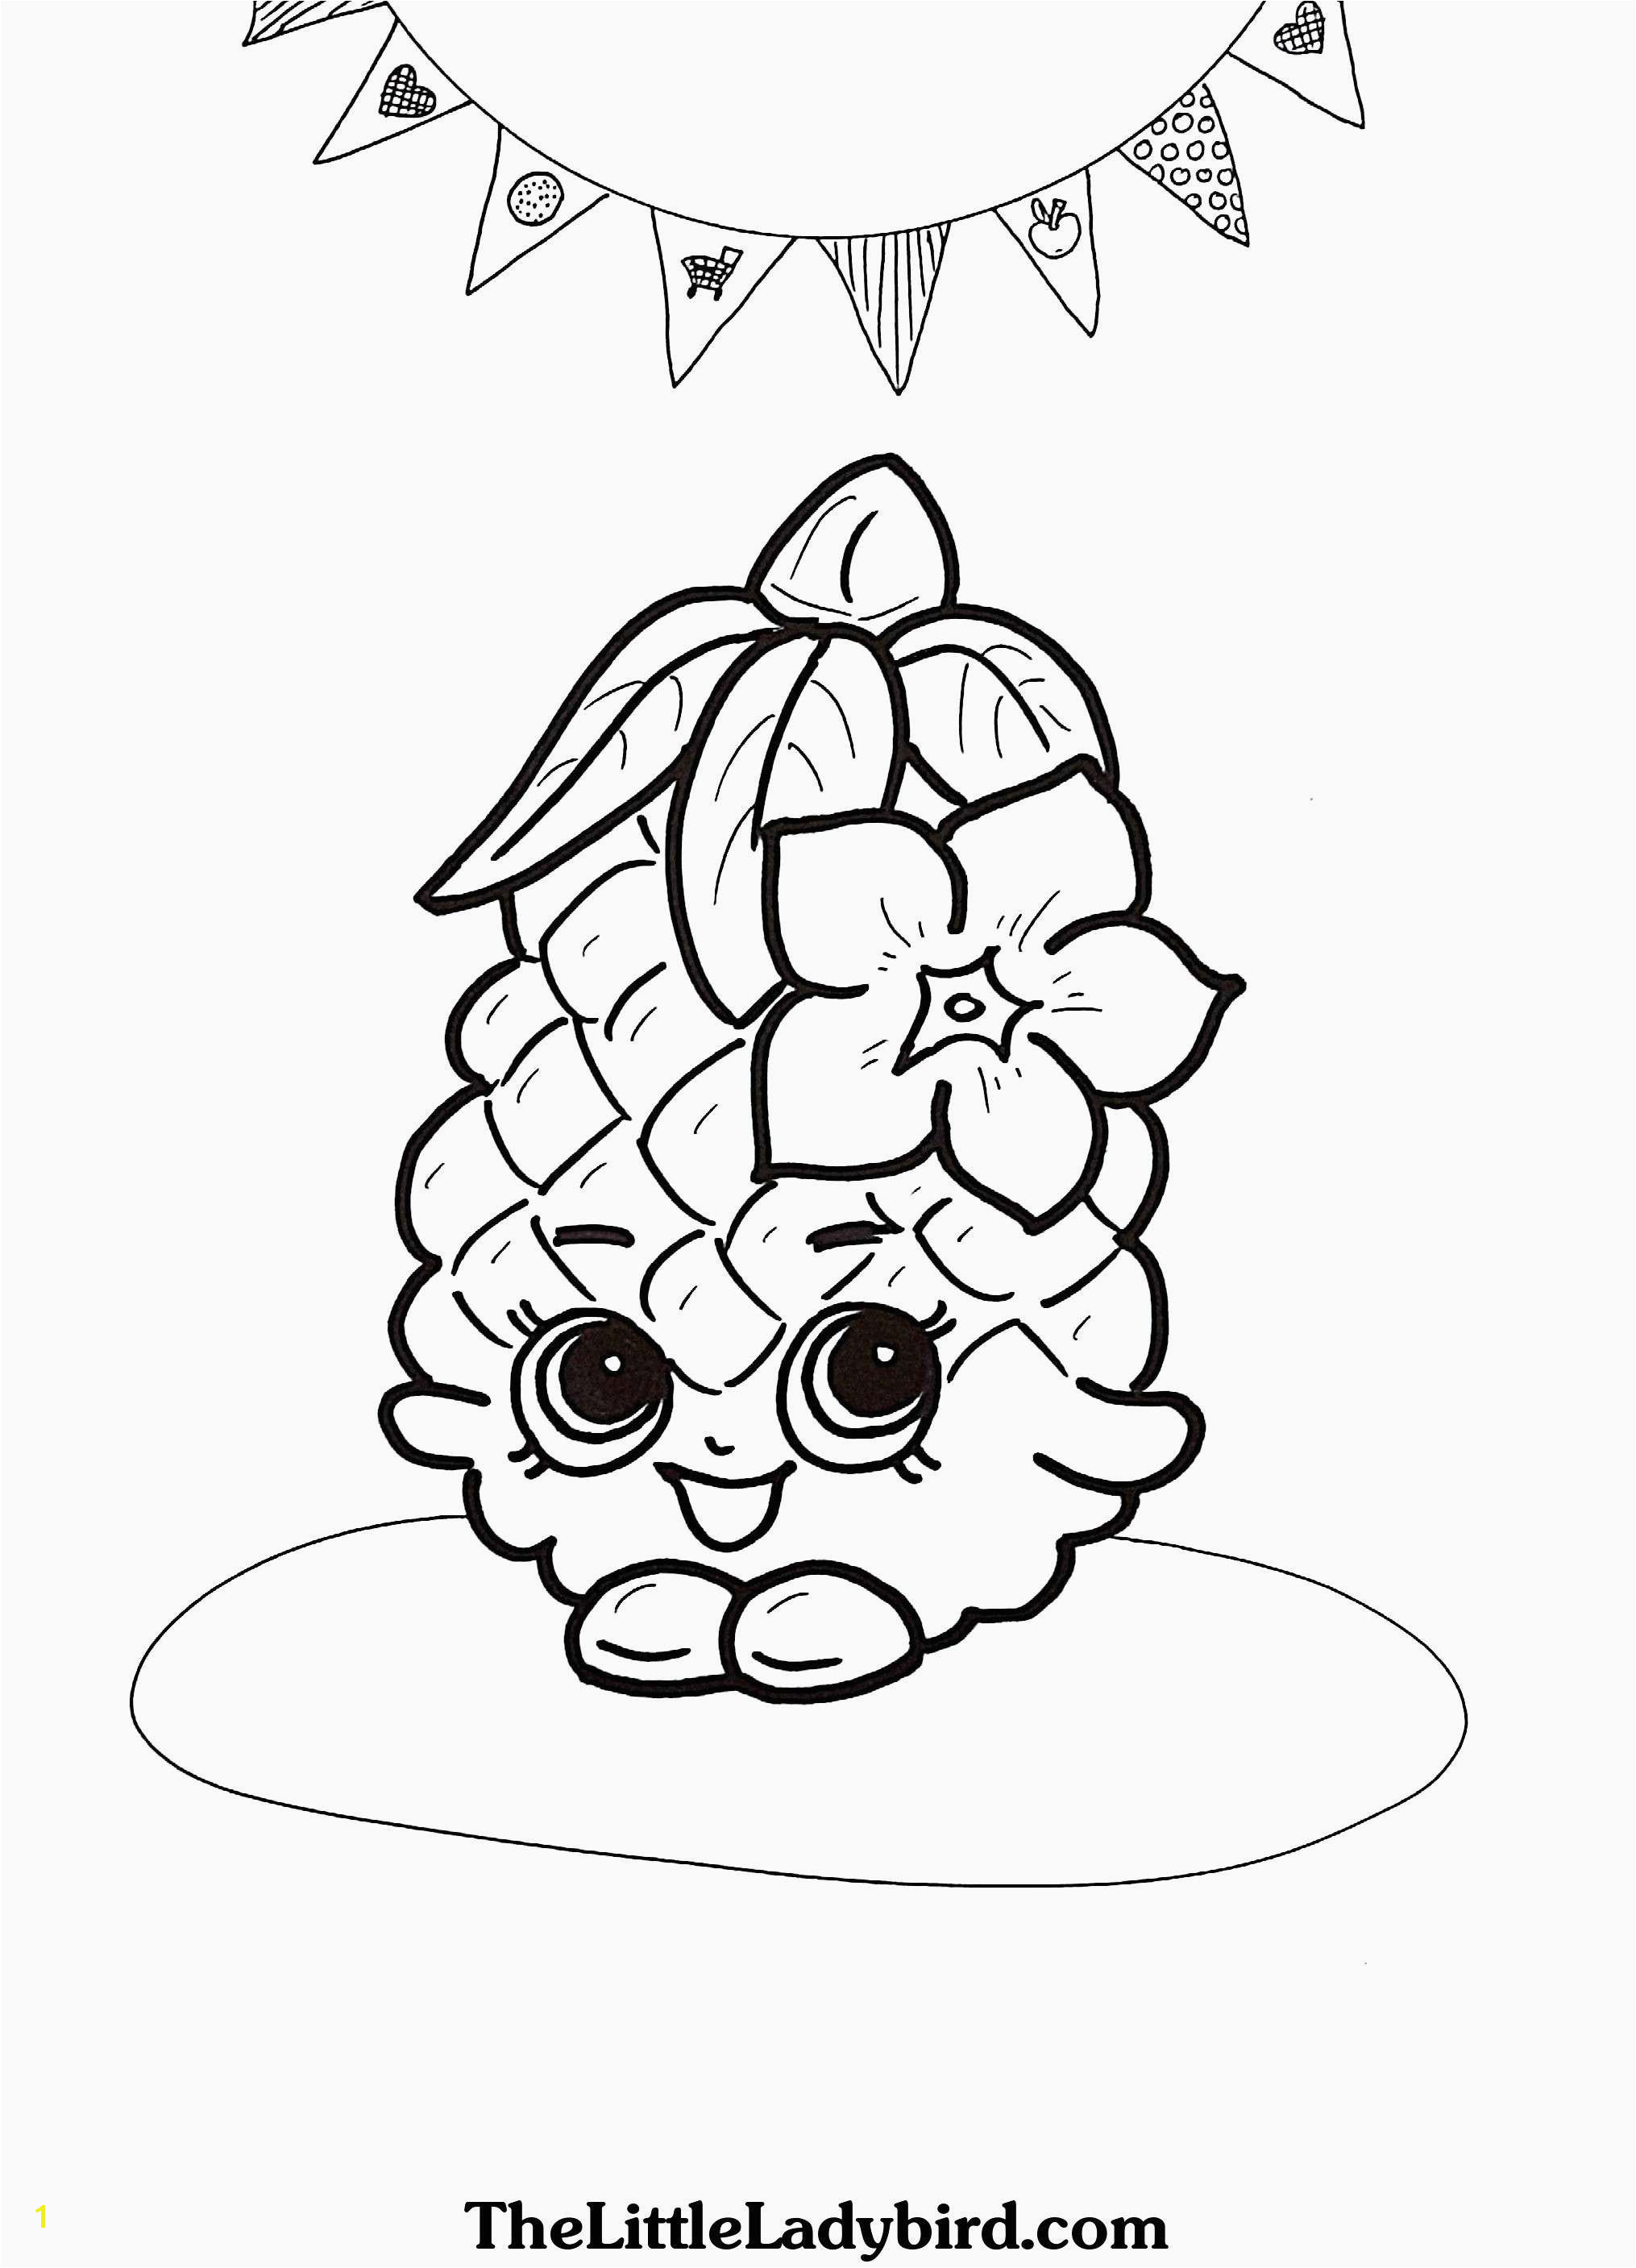 Tiana Coloring Pages Car Coloring Pages New Cool Coloring Page Unique Witch Coloring Pages New